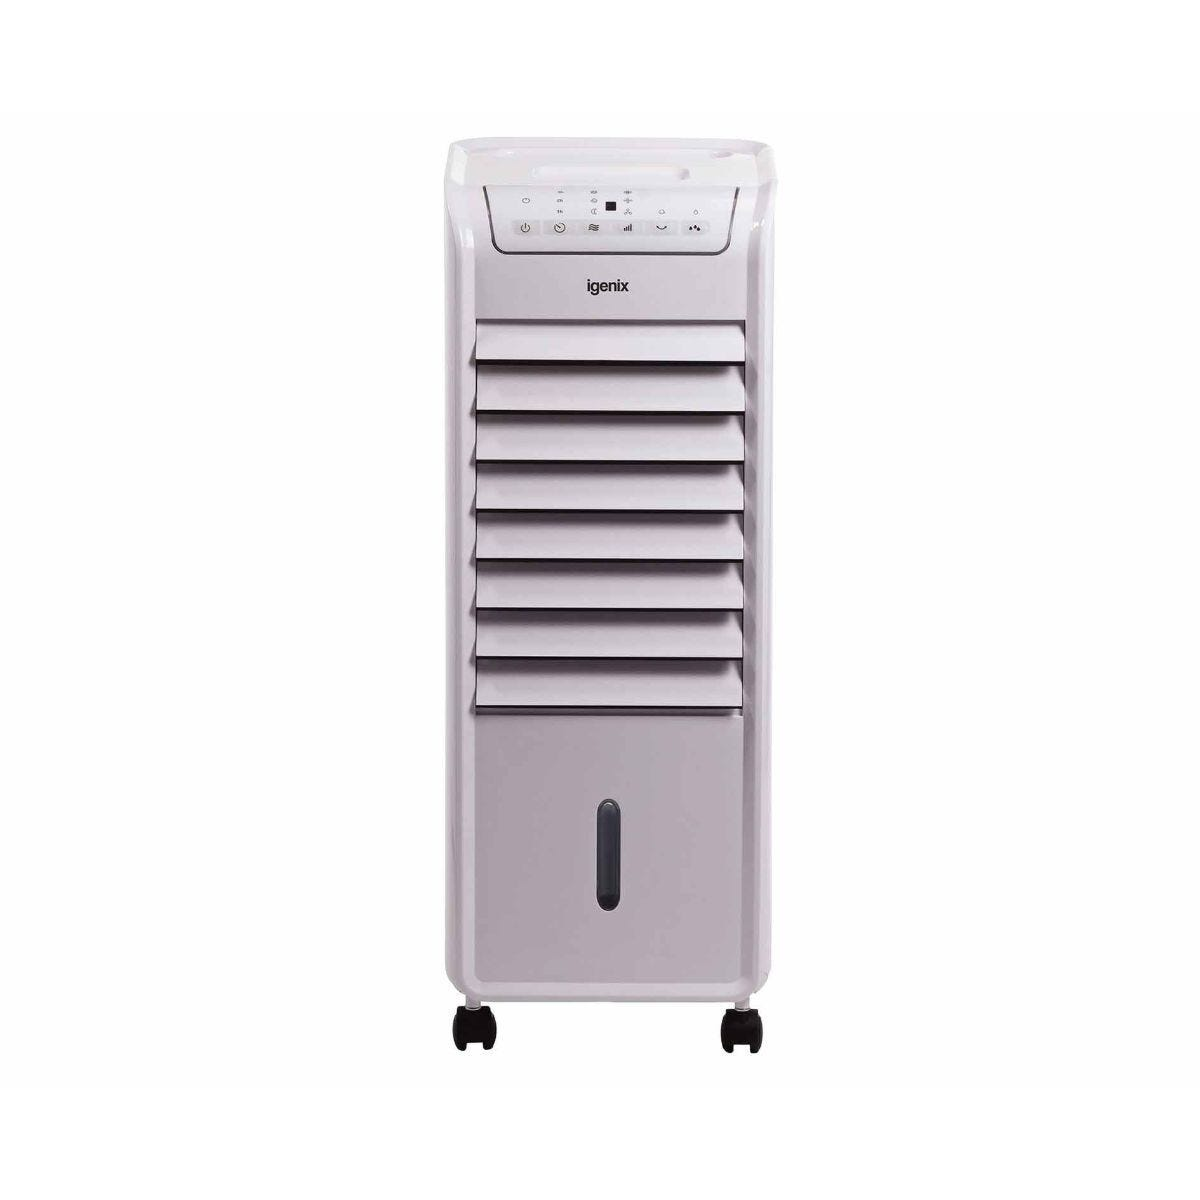 Igenix Evaporative Air Cooler with LED Display